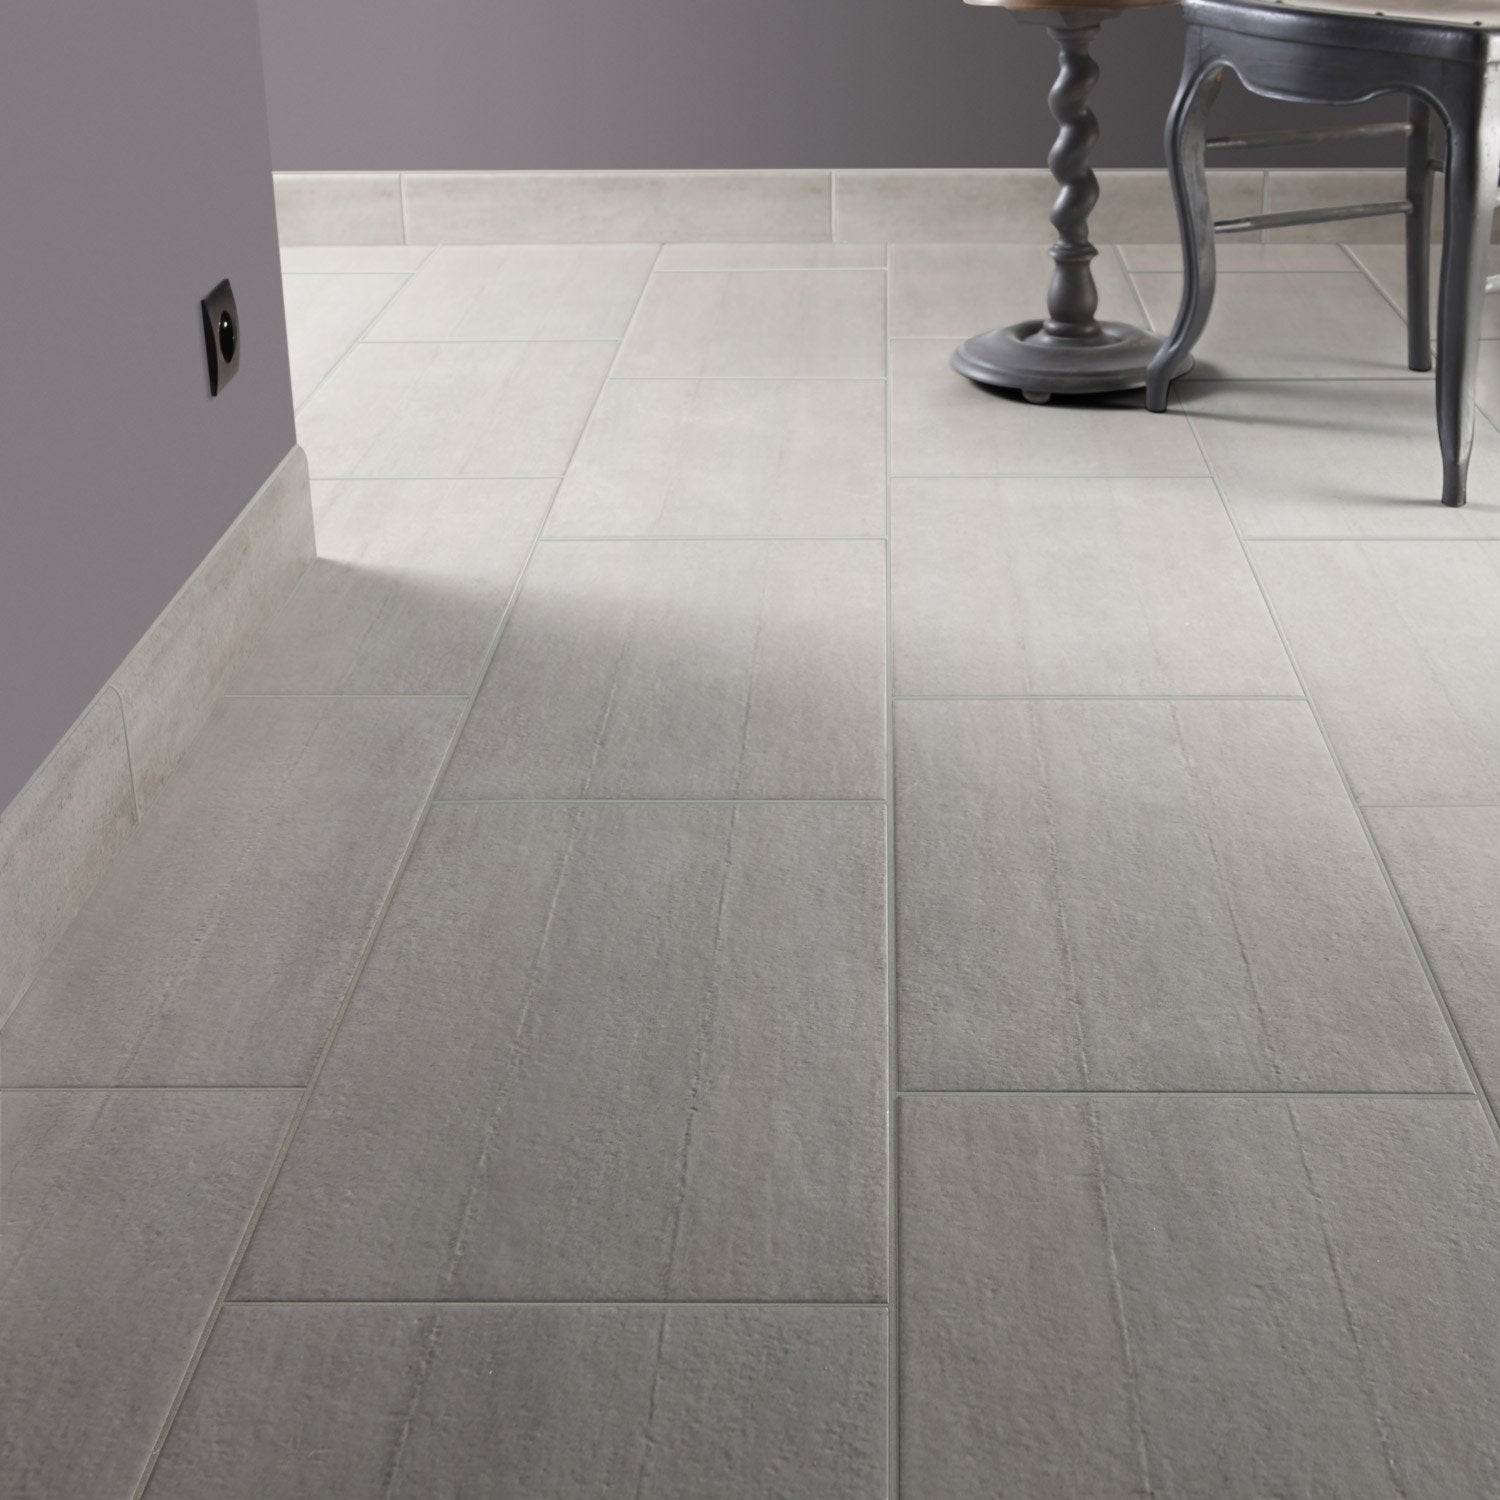 Carrelage interieur leroy merlin 28 images carrelage for Carrelage interieur gris